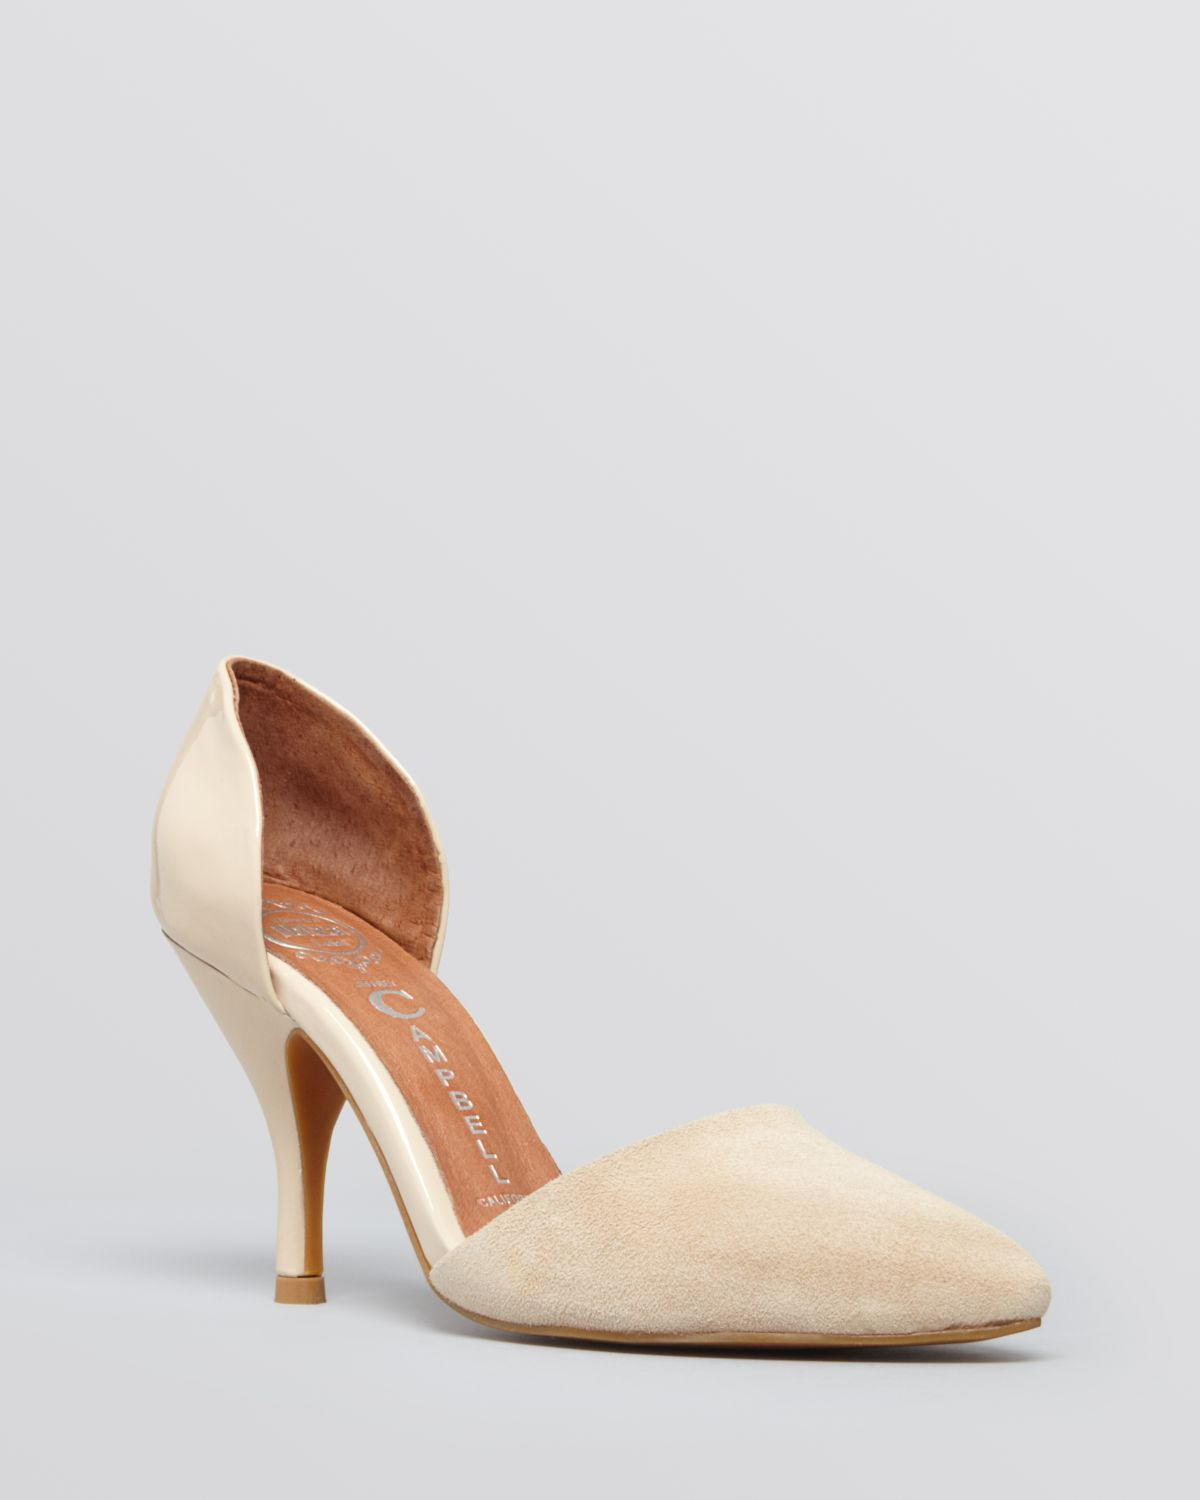 Jeffrey Campbell Pointed Toe D'Orsay Pumps - Callista High Heel | Bloomingdale's